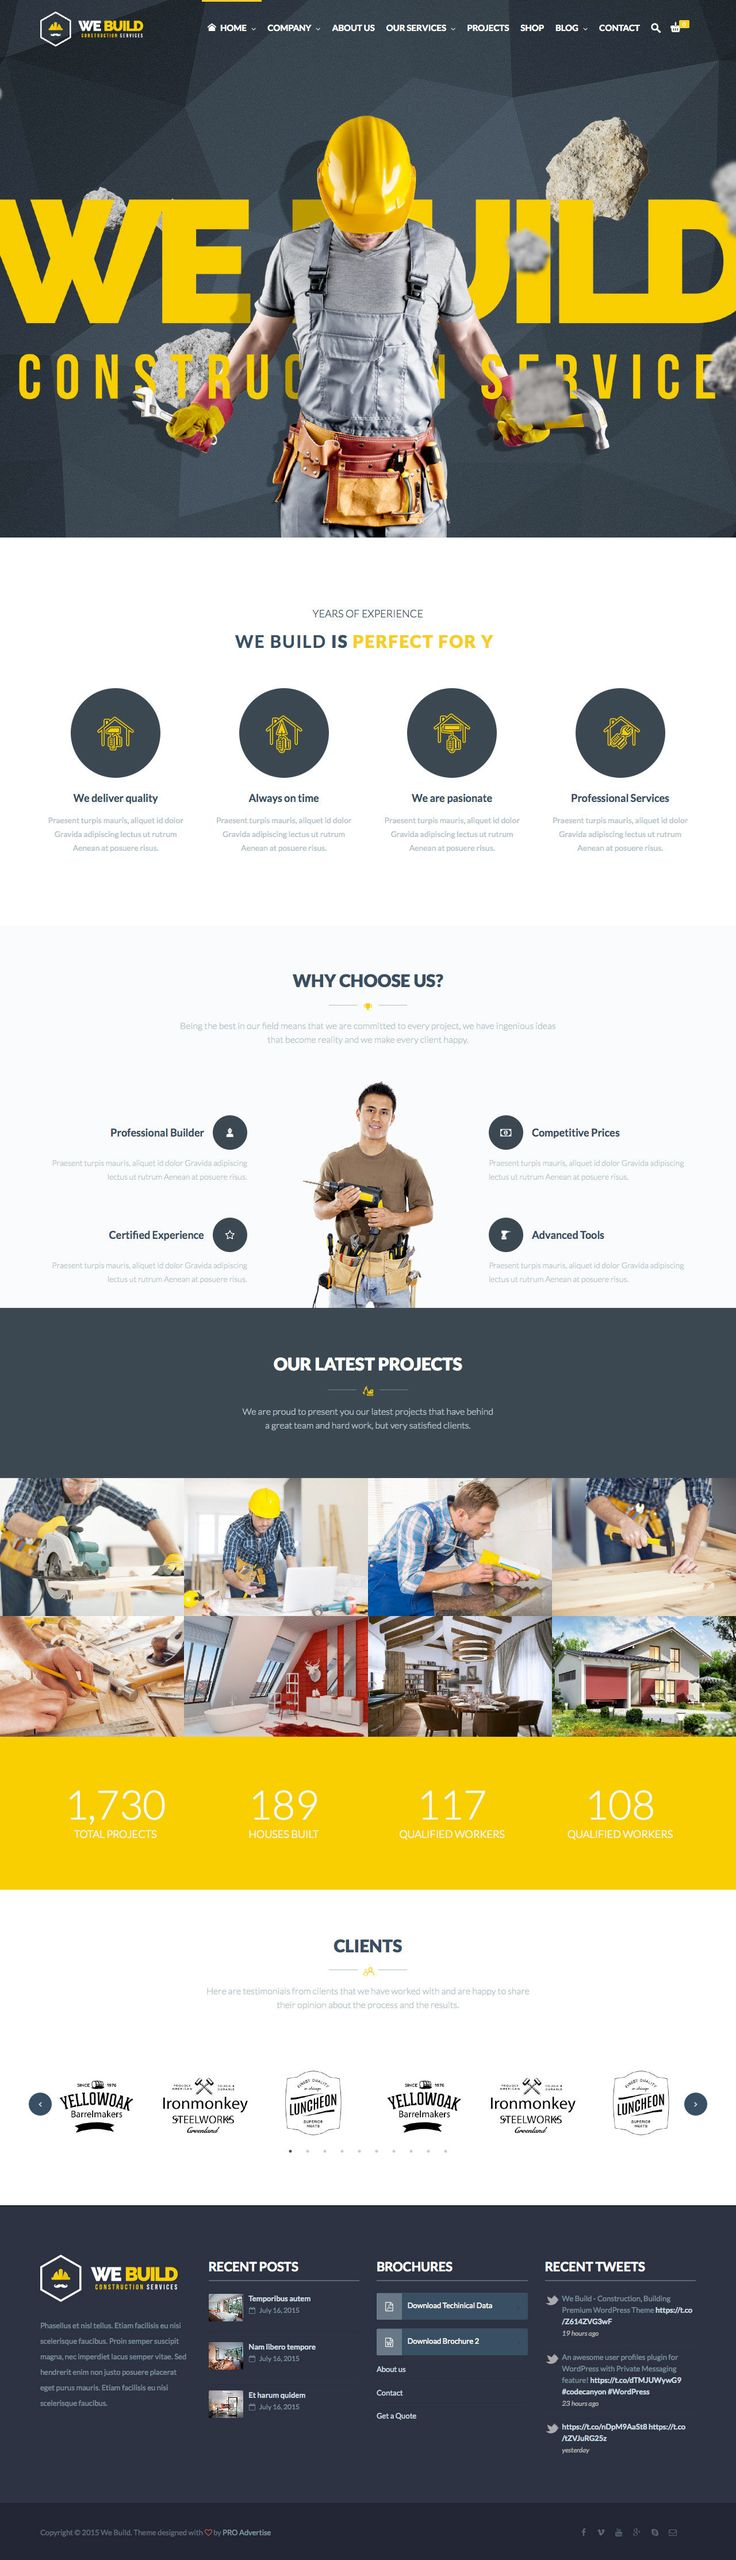 We Build (More web design inspiration at topdesigninspiration.com) #design #web #webdesign #inspiration #sitedesign #responsive